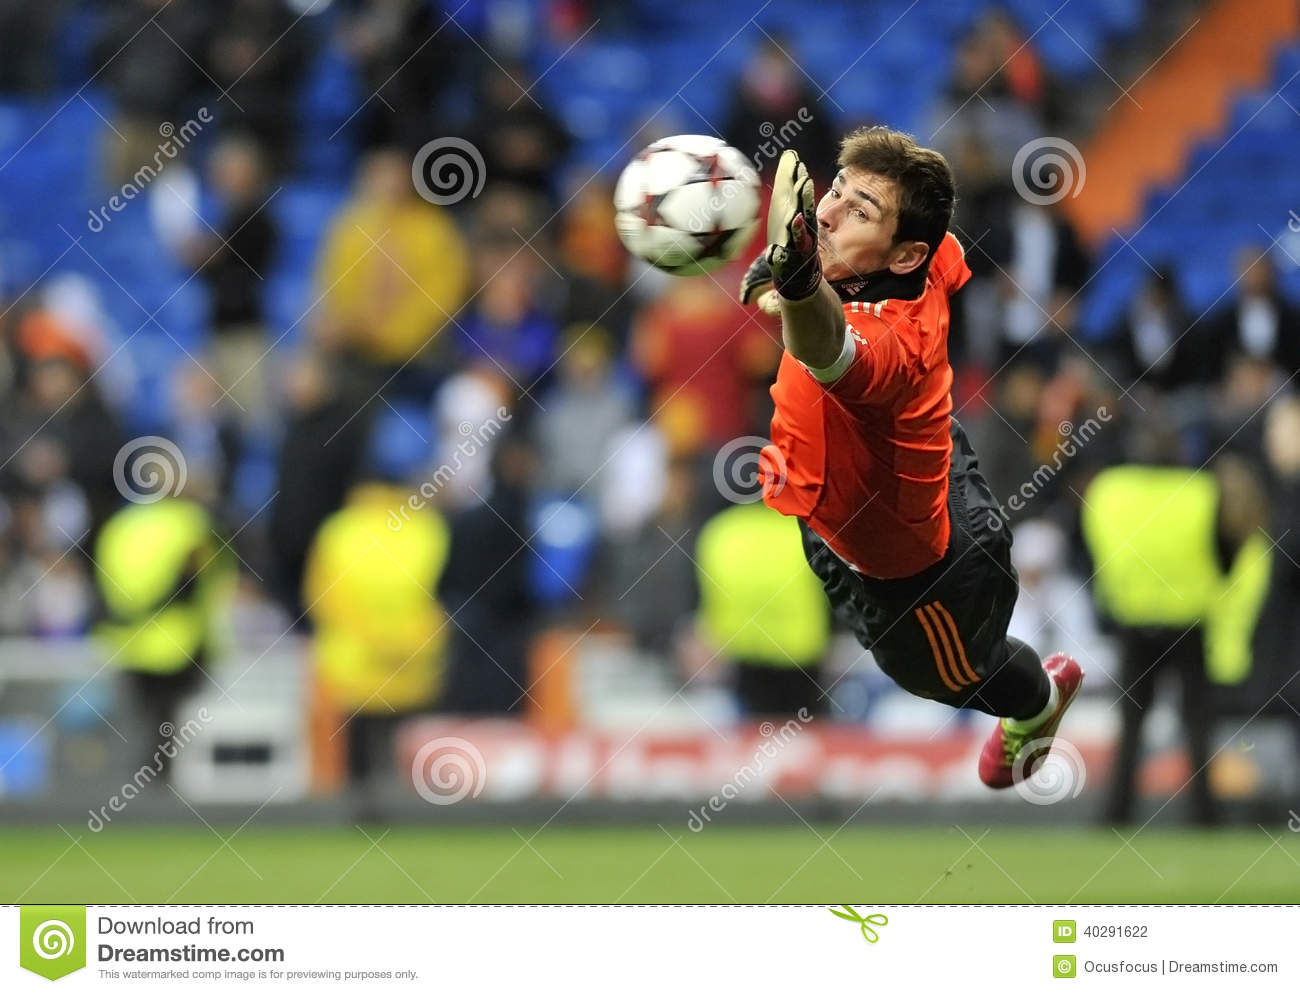 Spanish goalkeeper of Real Madrid Iker Casillas in action